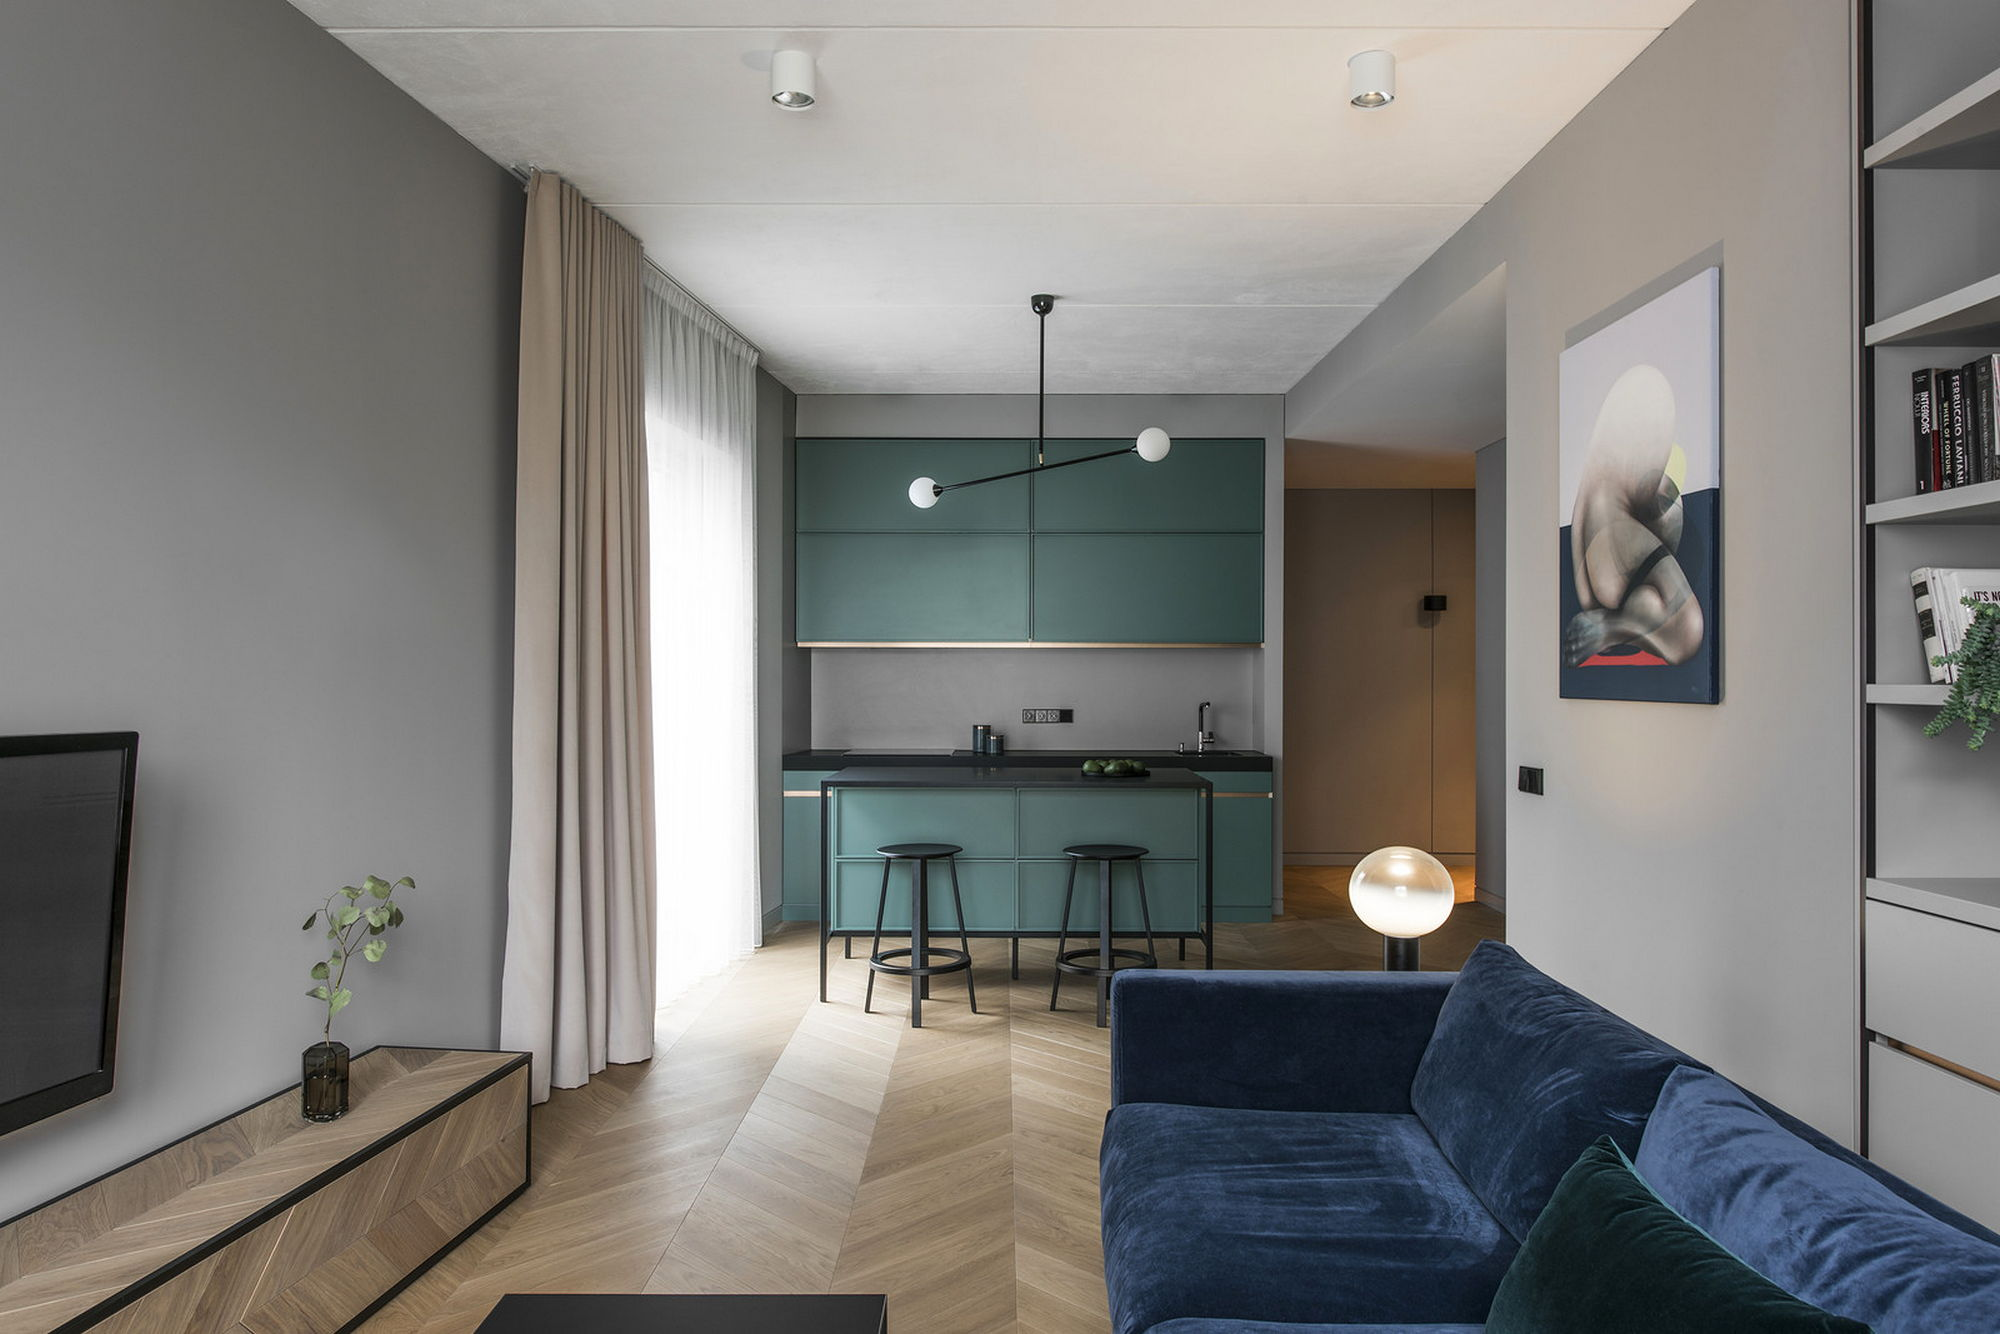 Apt Designs Interior Of The Apartment In Vilnius